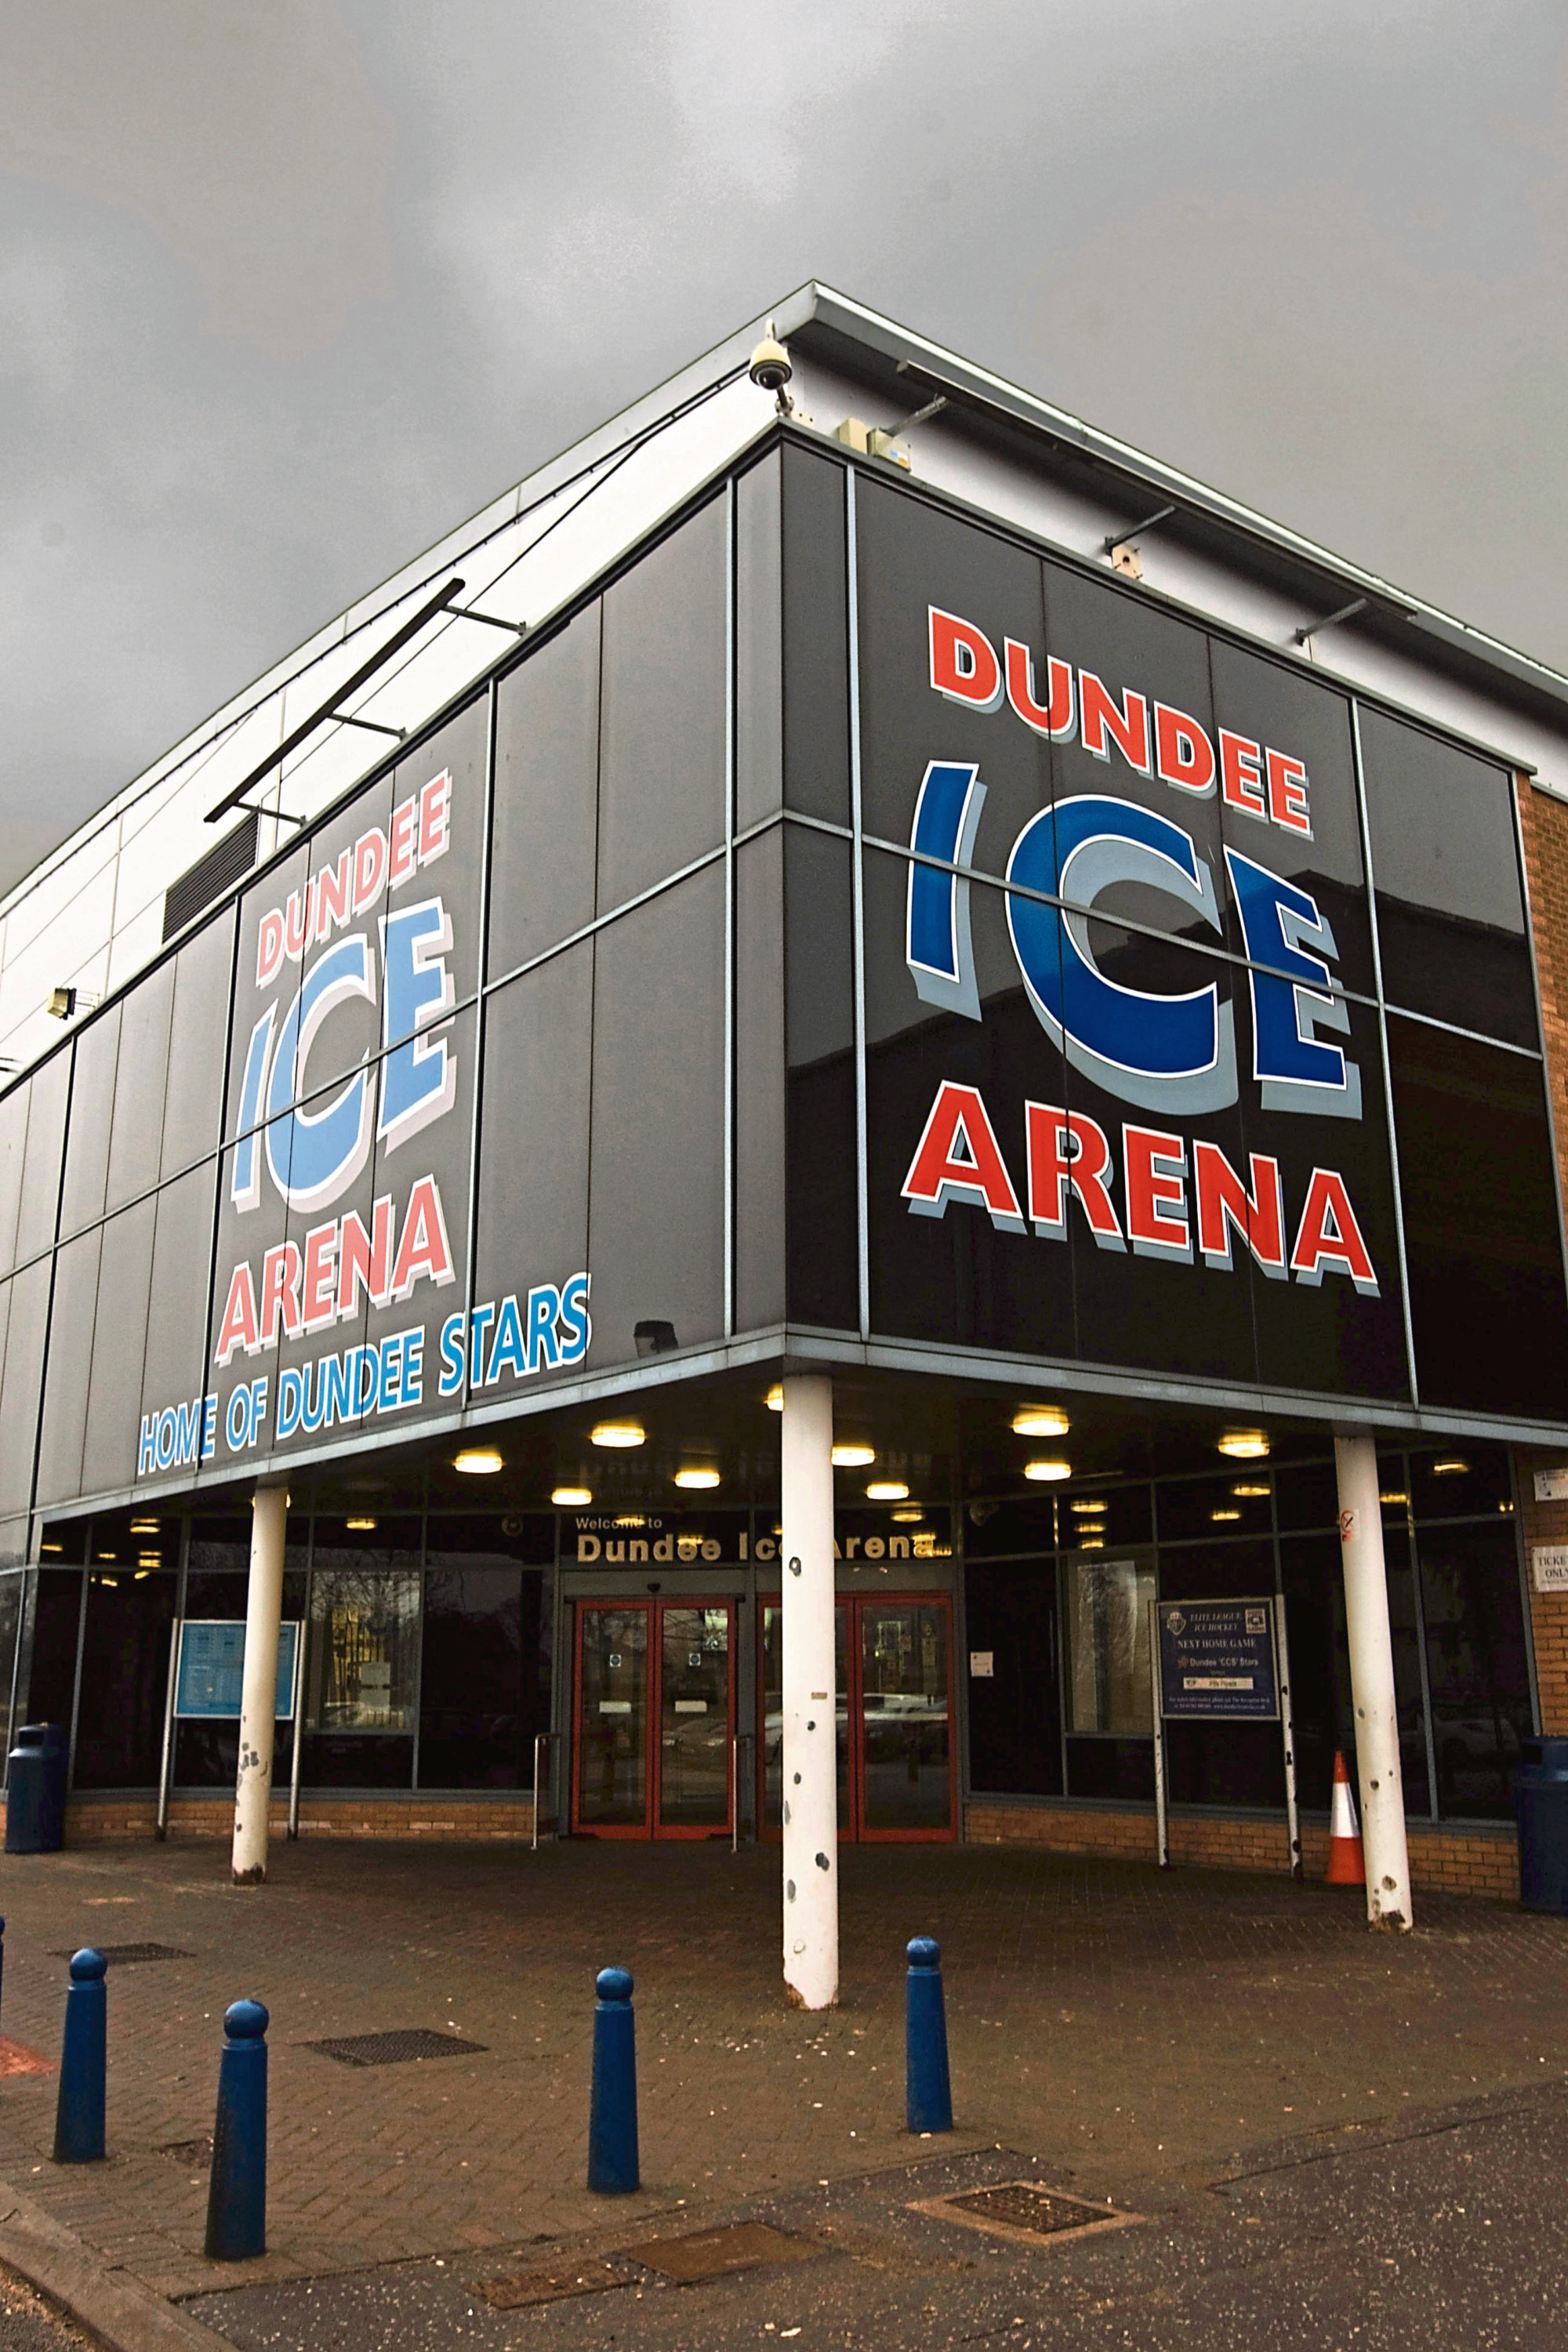 Dundee Ice Arena, Camperdown Leisure Park, Dundee